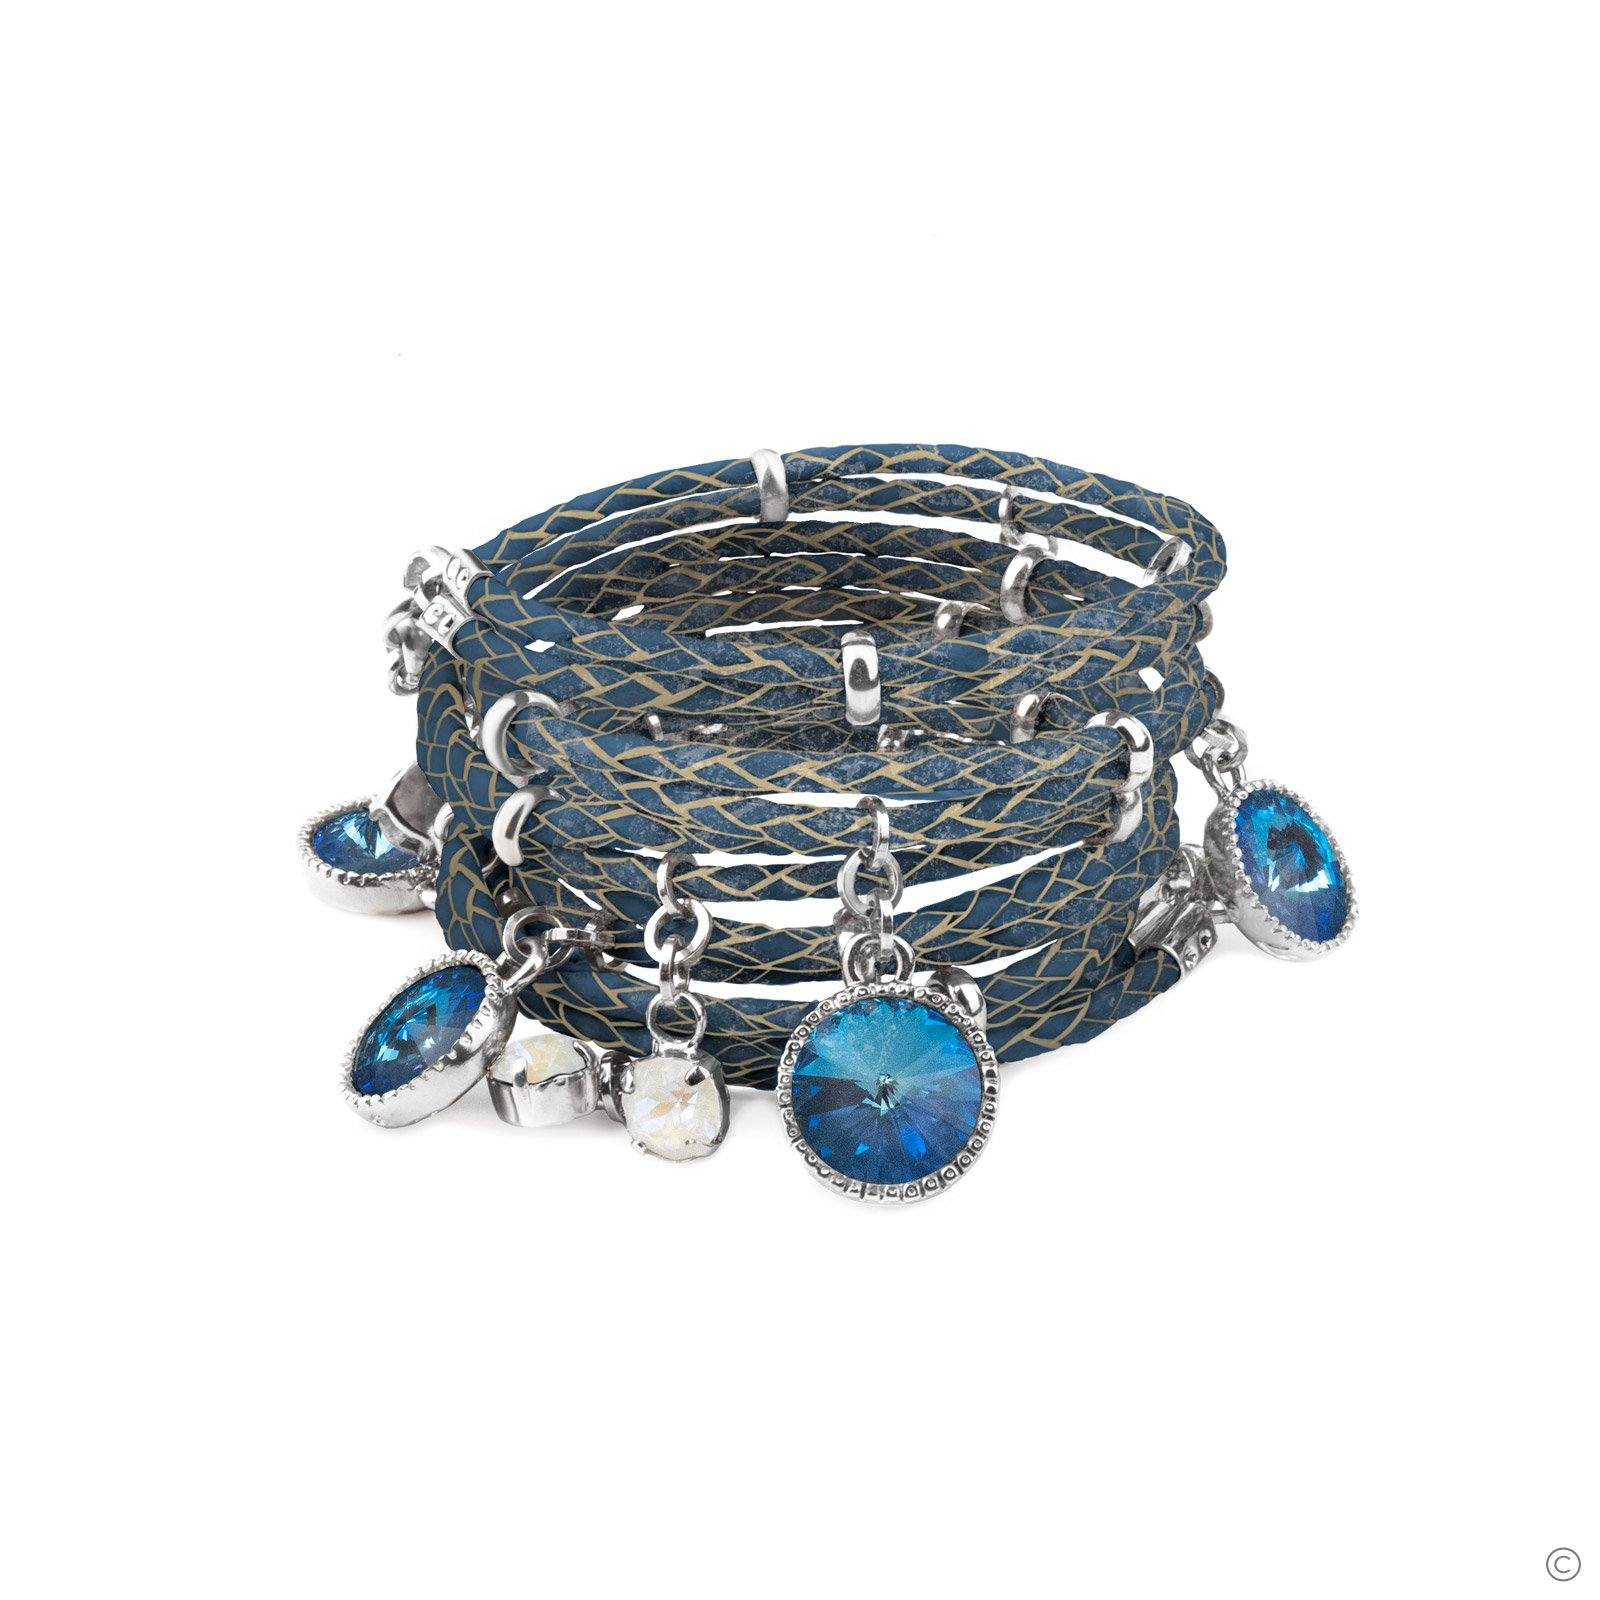 Daydream Leather Bracelet - Ocean Blue & Silver